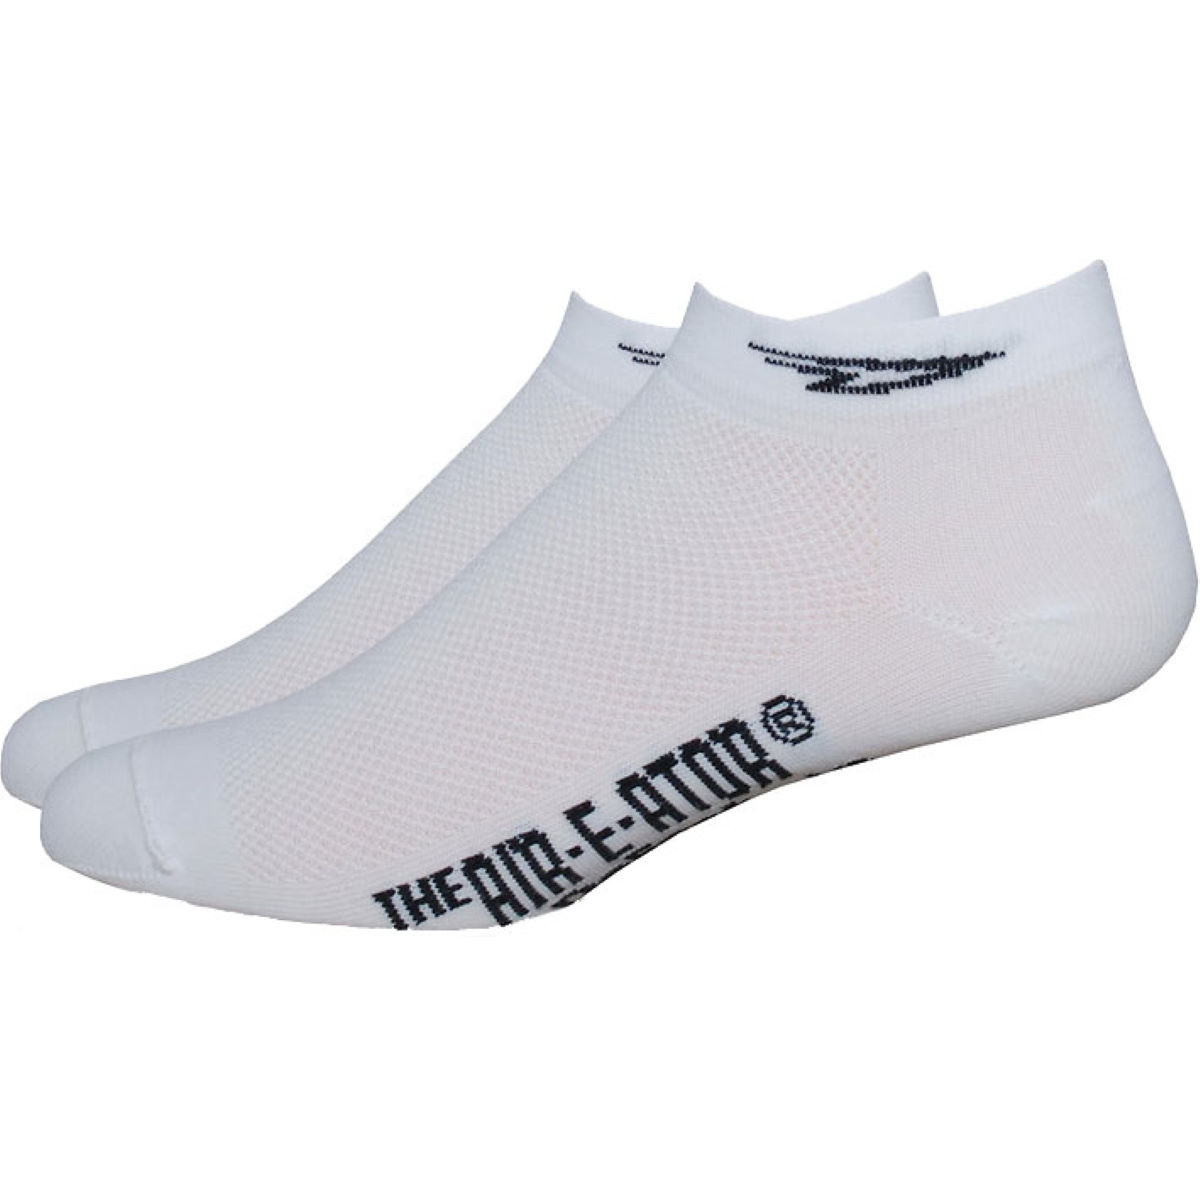 DeFeet Speede D-Logo Low Cuff Socks